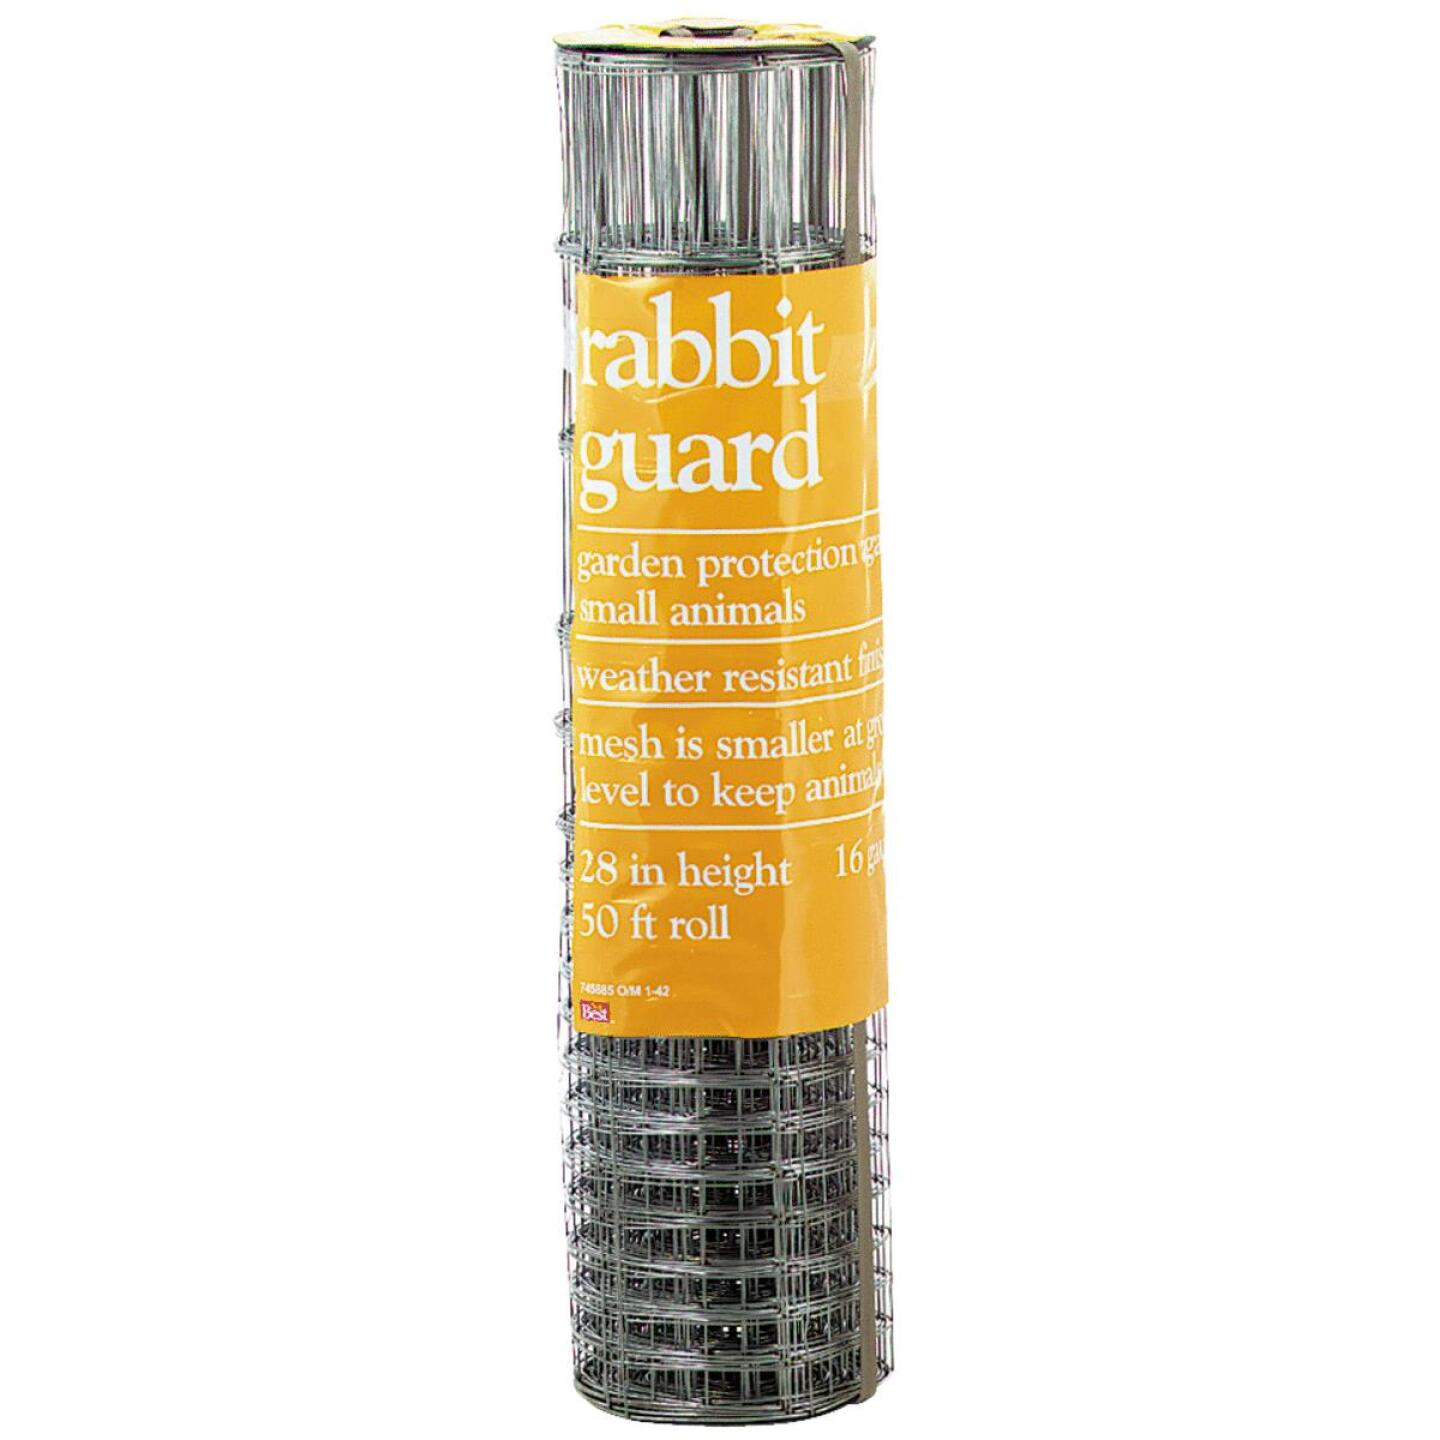 Rabbit Guard 40 In. H. x 50 Ft. L. Galvanized Wire Garden Fence, Silver Image 2